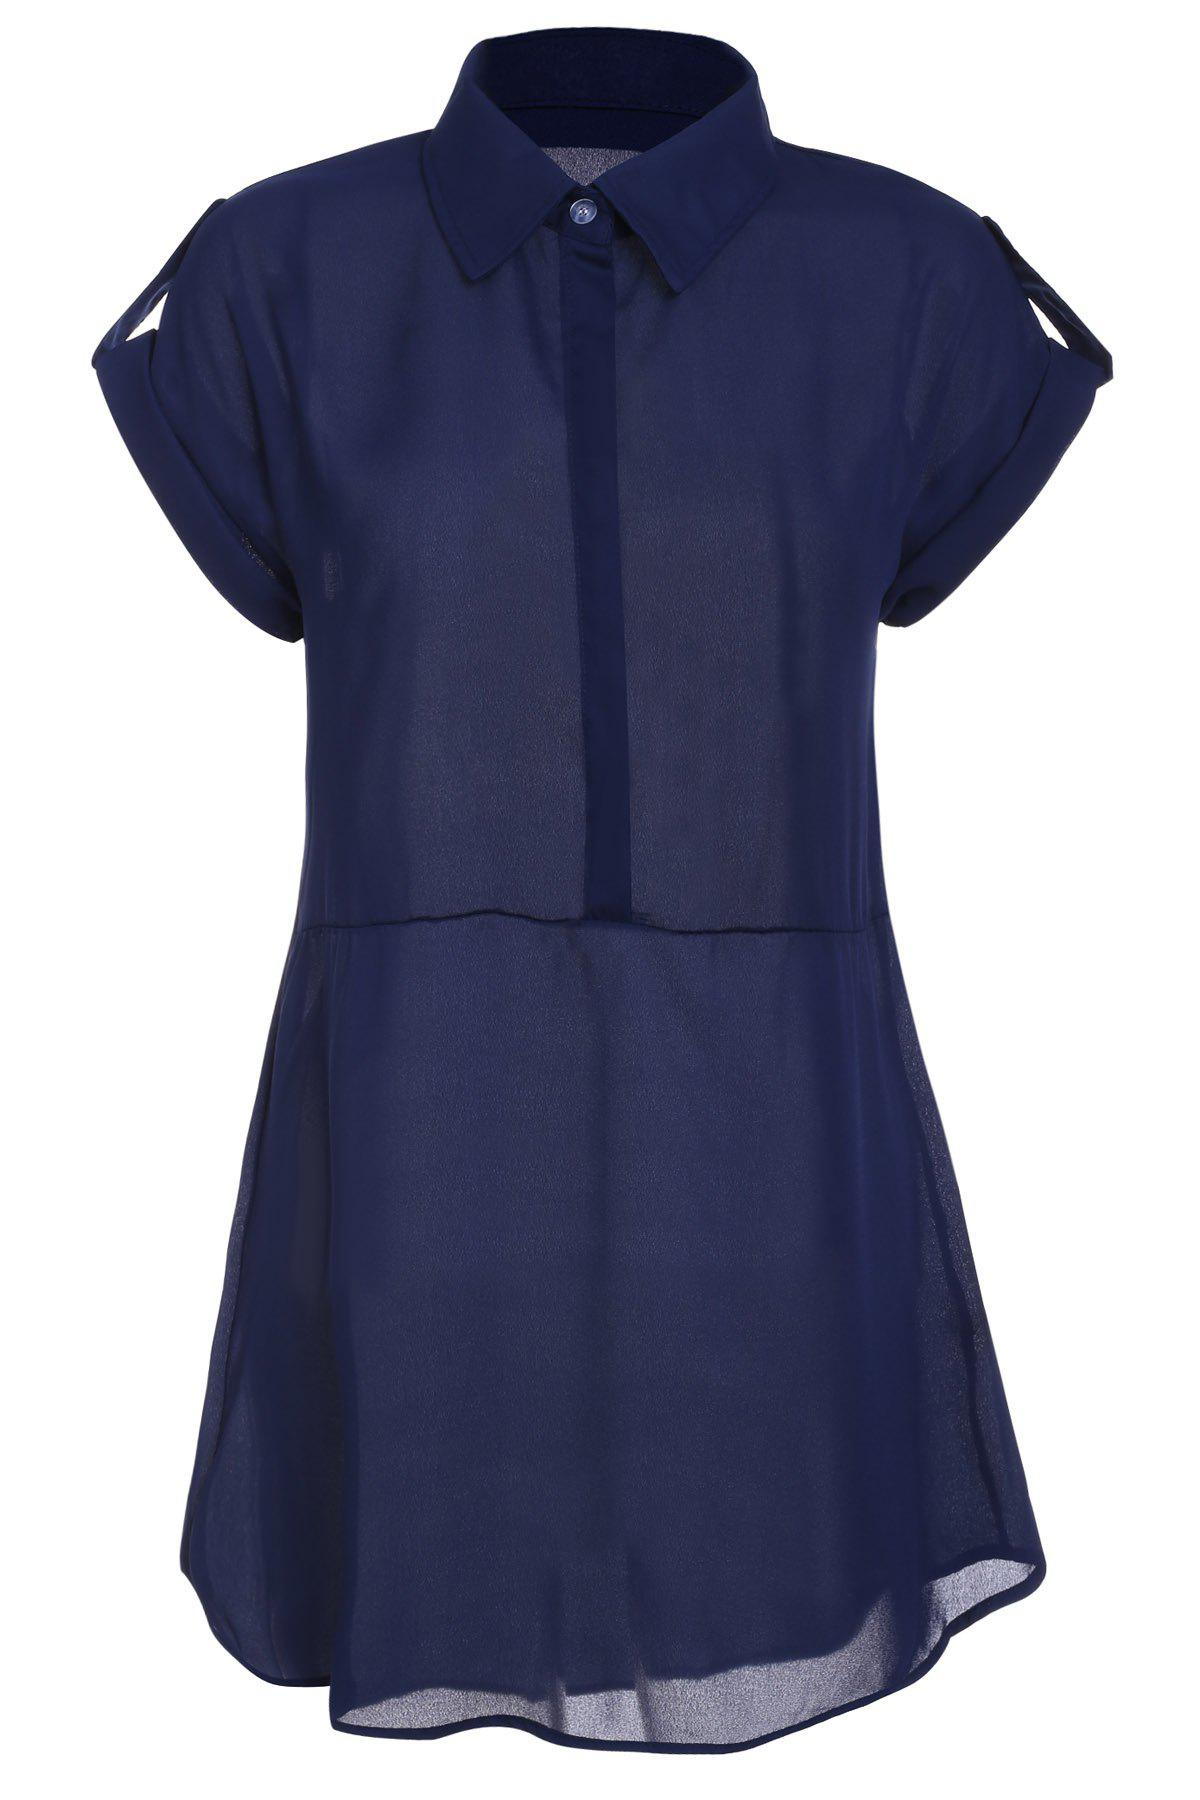 Turn Down Collar Short Sleeve Eqaulets Embellished Packet Buttock Dress - CADETBLUE L